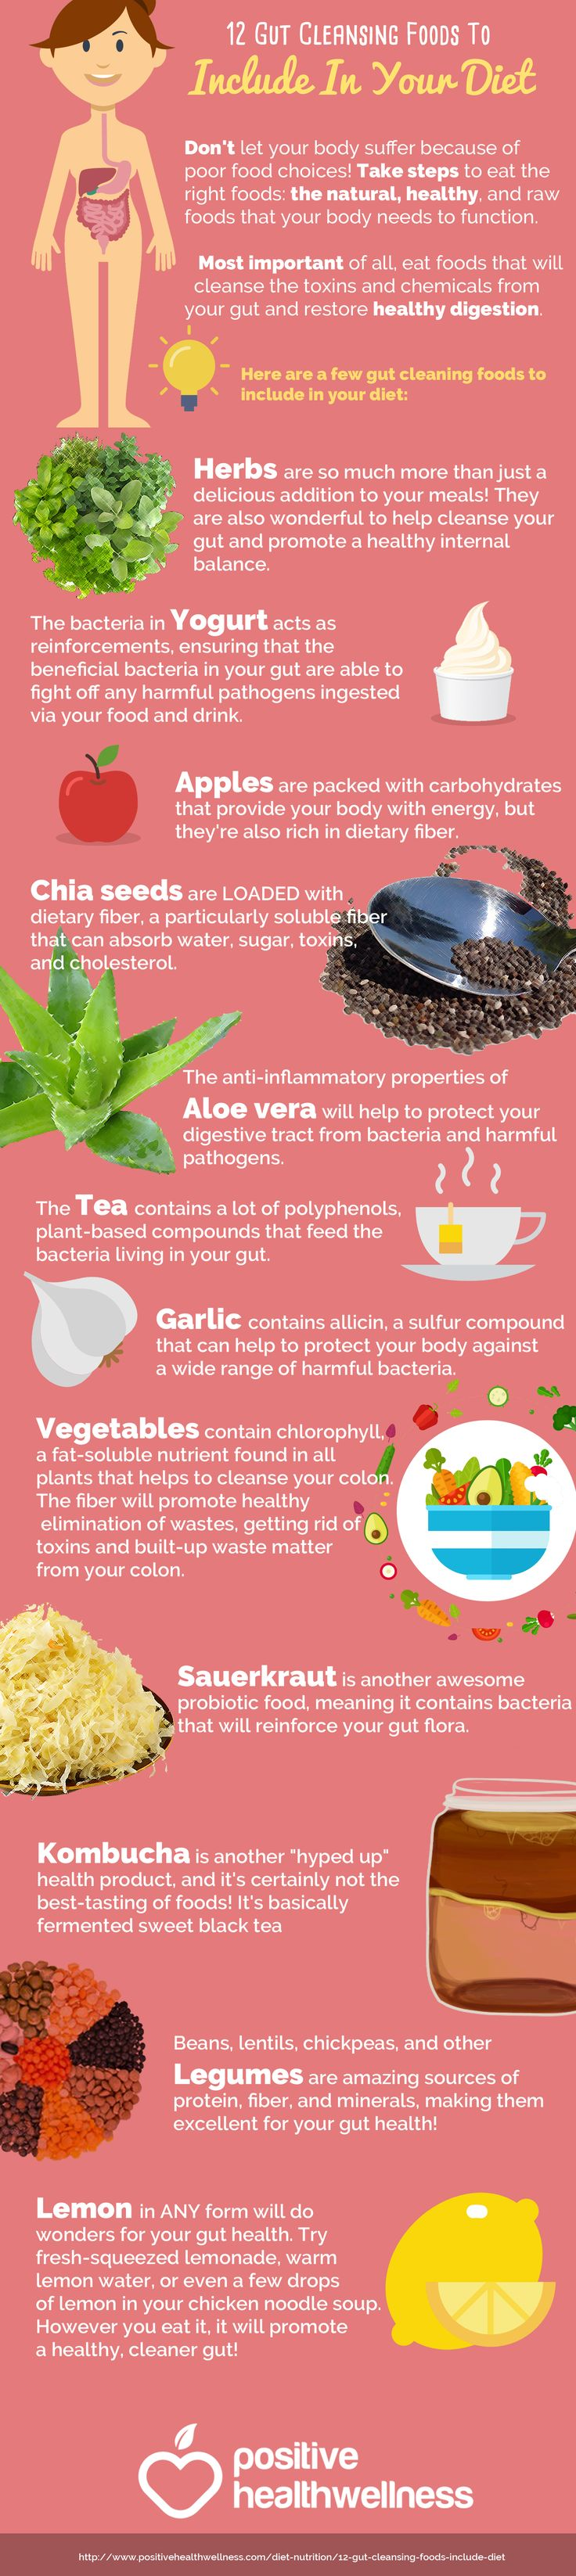 Don't let your body suffer because of poor food choices! Take steps to eat the right foods: the natural, healthy, and raw foods that your body needs to function. Most important of all, eat foods that will cleanse the toxins and chemicals from your gut and restore healthy digestion | 12 Gut Cleansing Foods To Include In Your Diet